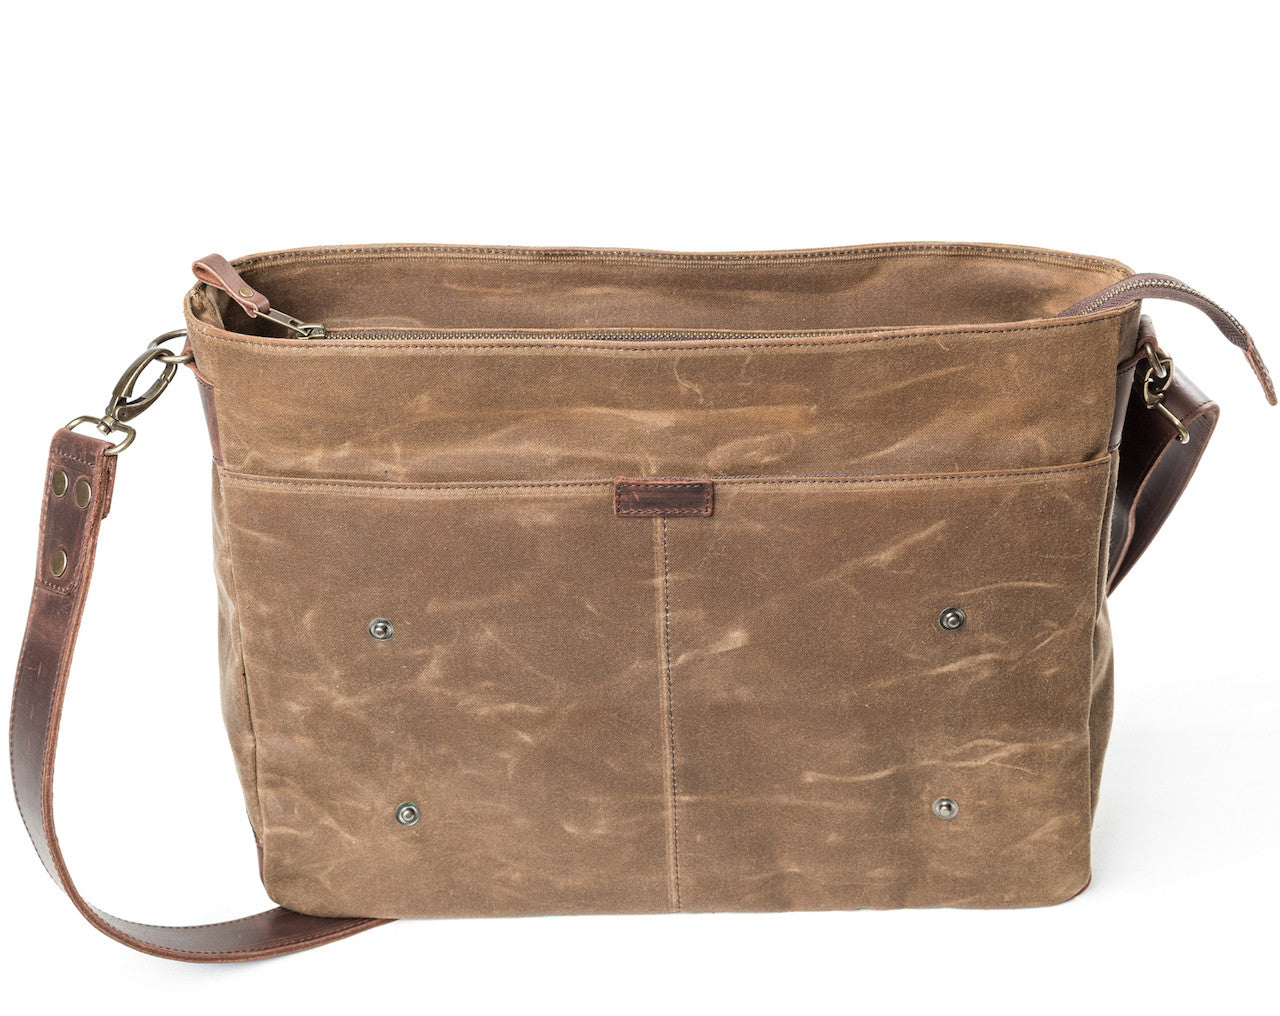 Waxed Canvas Leather Laptop Messenger Bag for Men and Women - Sandstone Canvas with Brown Leather by Tram 21 on Jetset Times SHOP